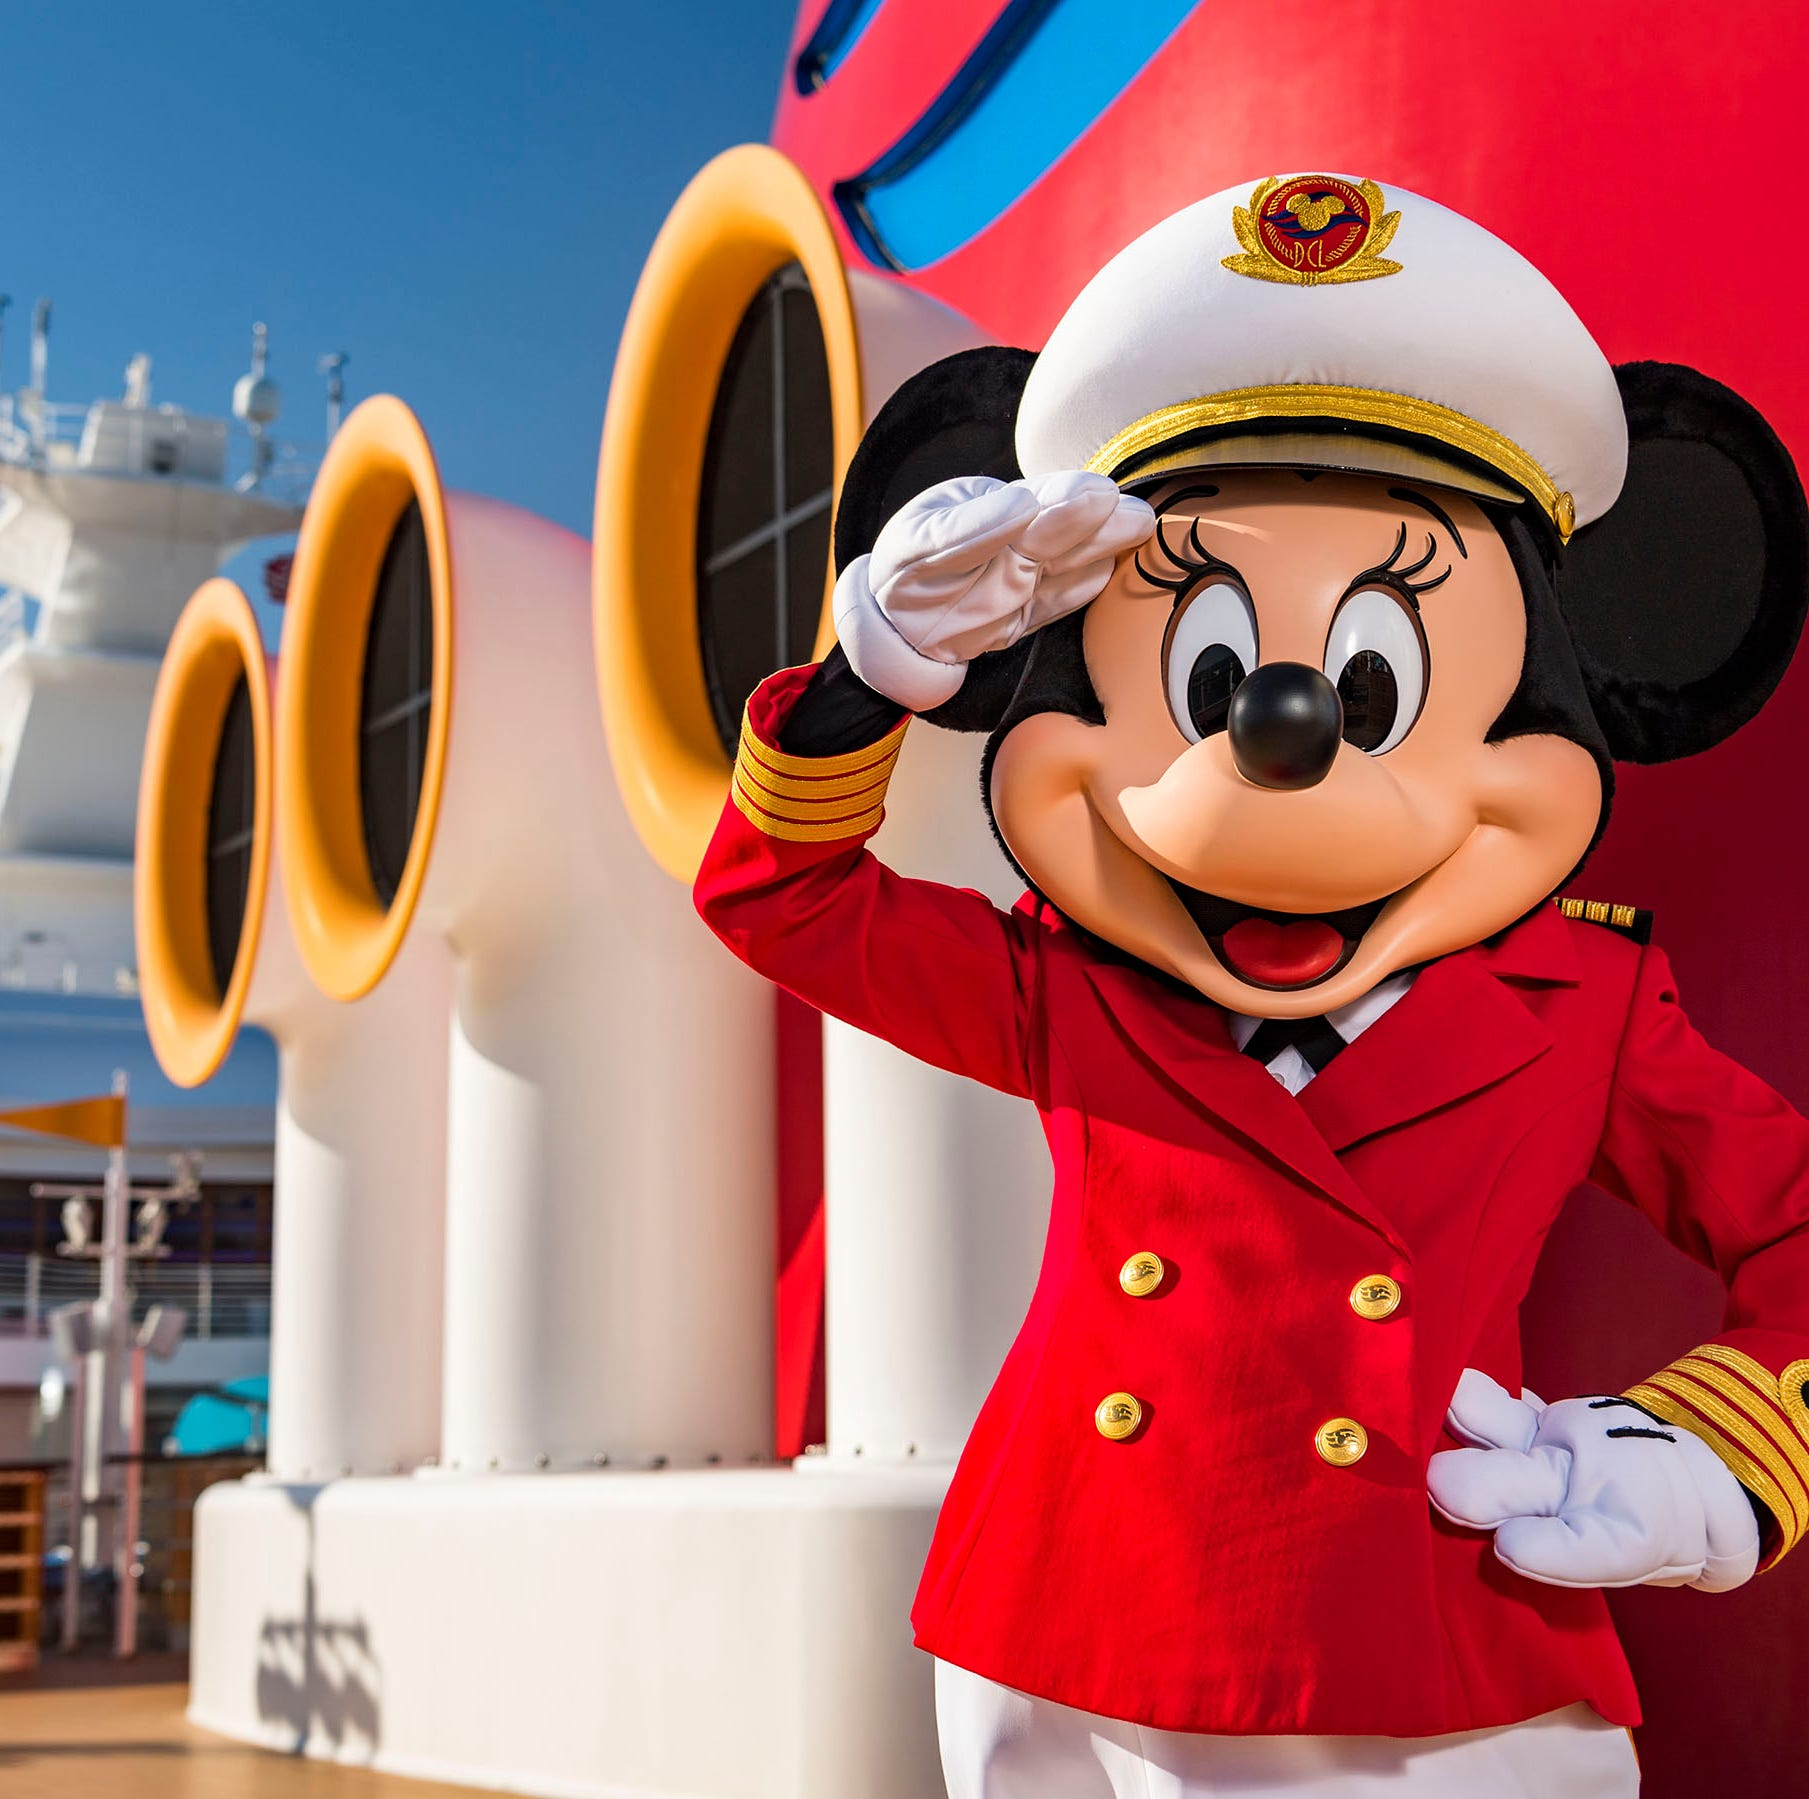 Disney Cruise Line has a new captain — Minnie Mouse takes the helm